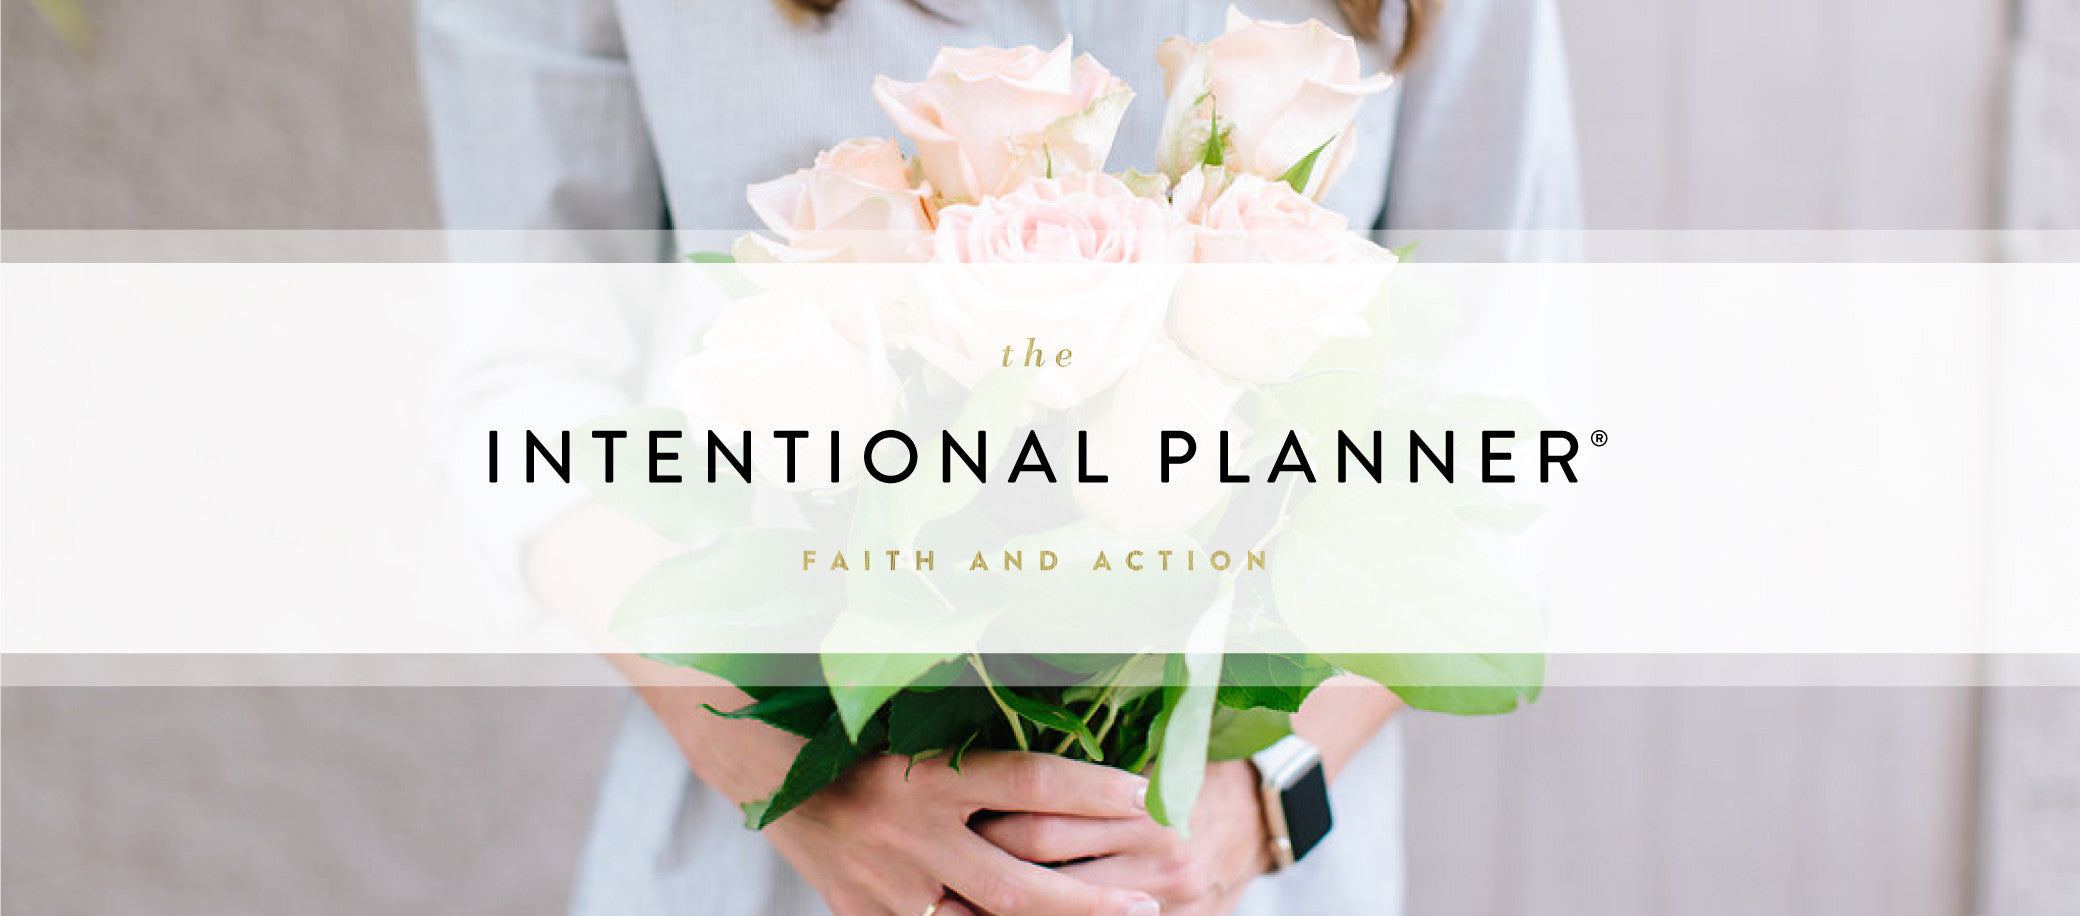 The Intentional Planner Story